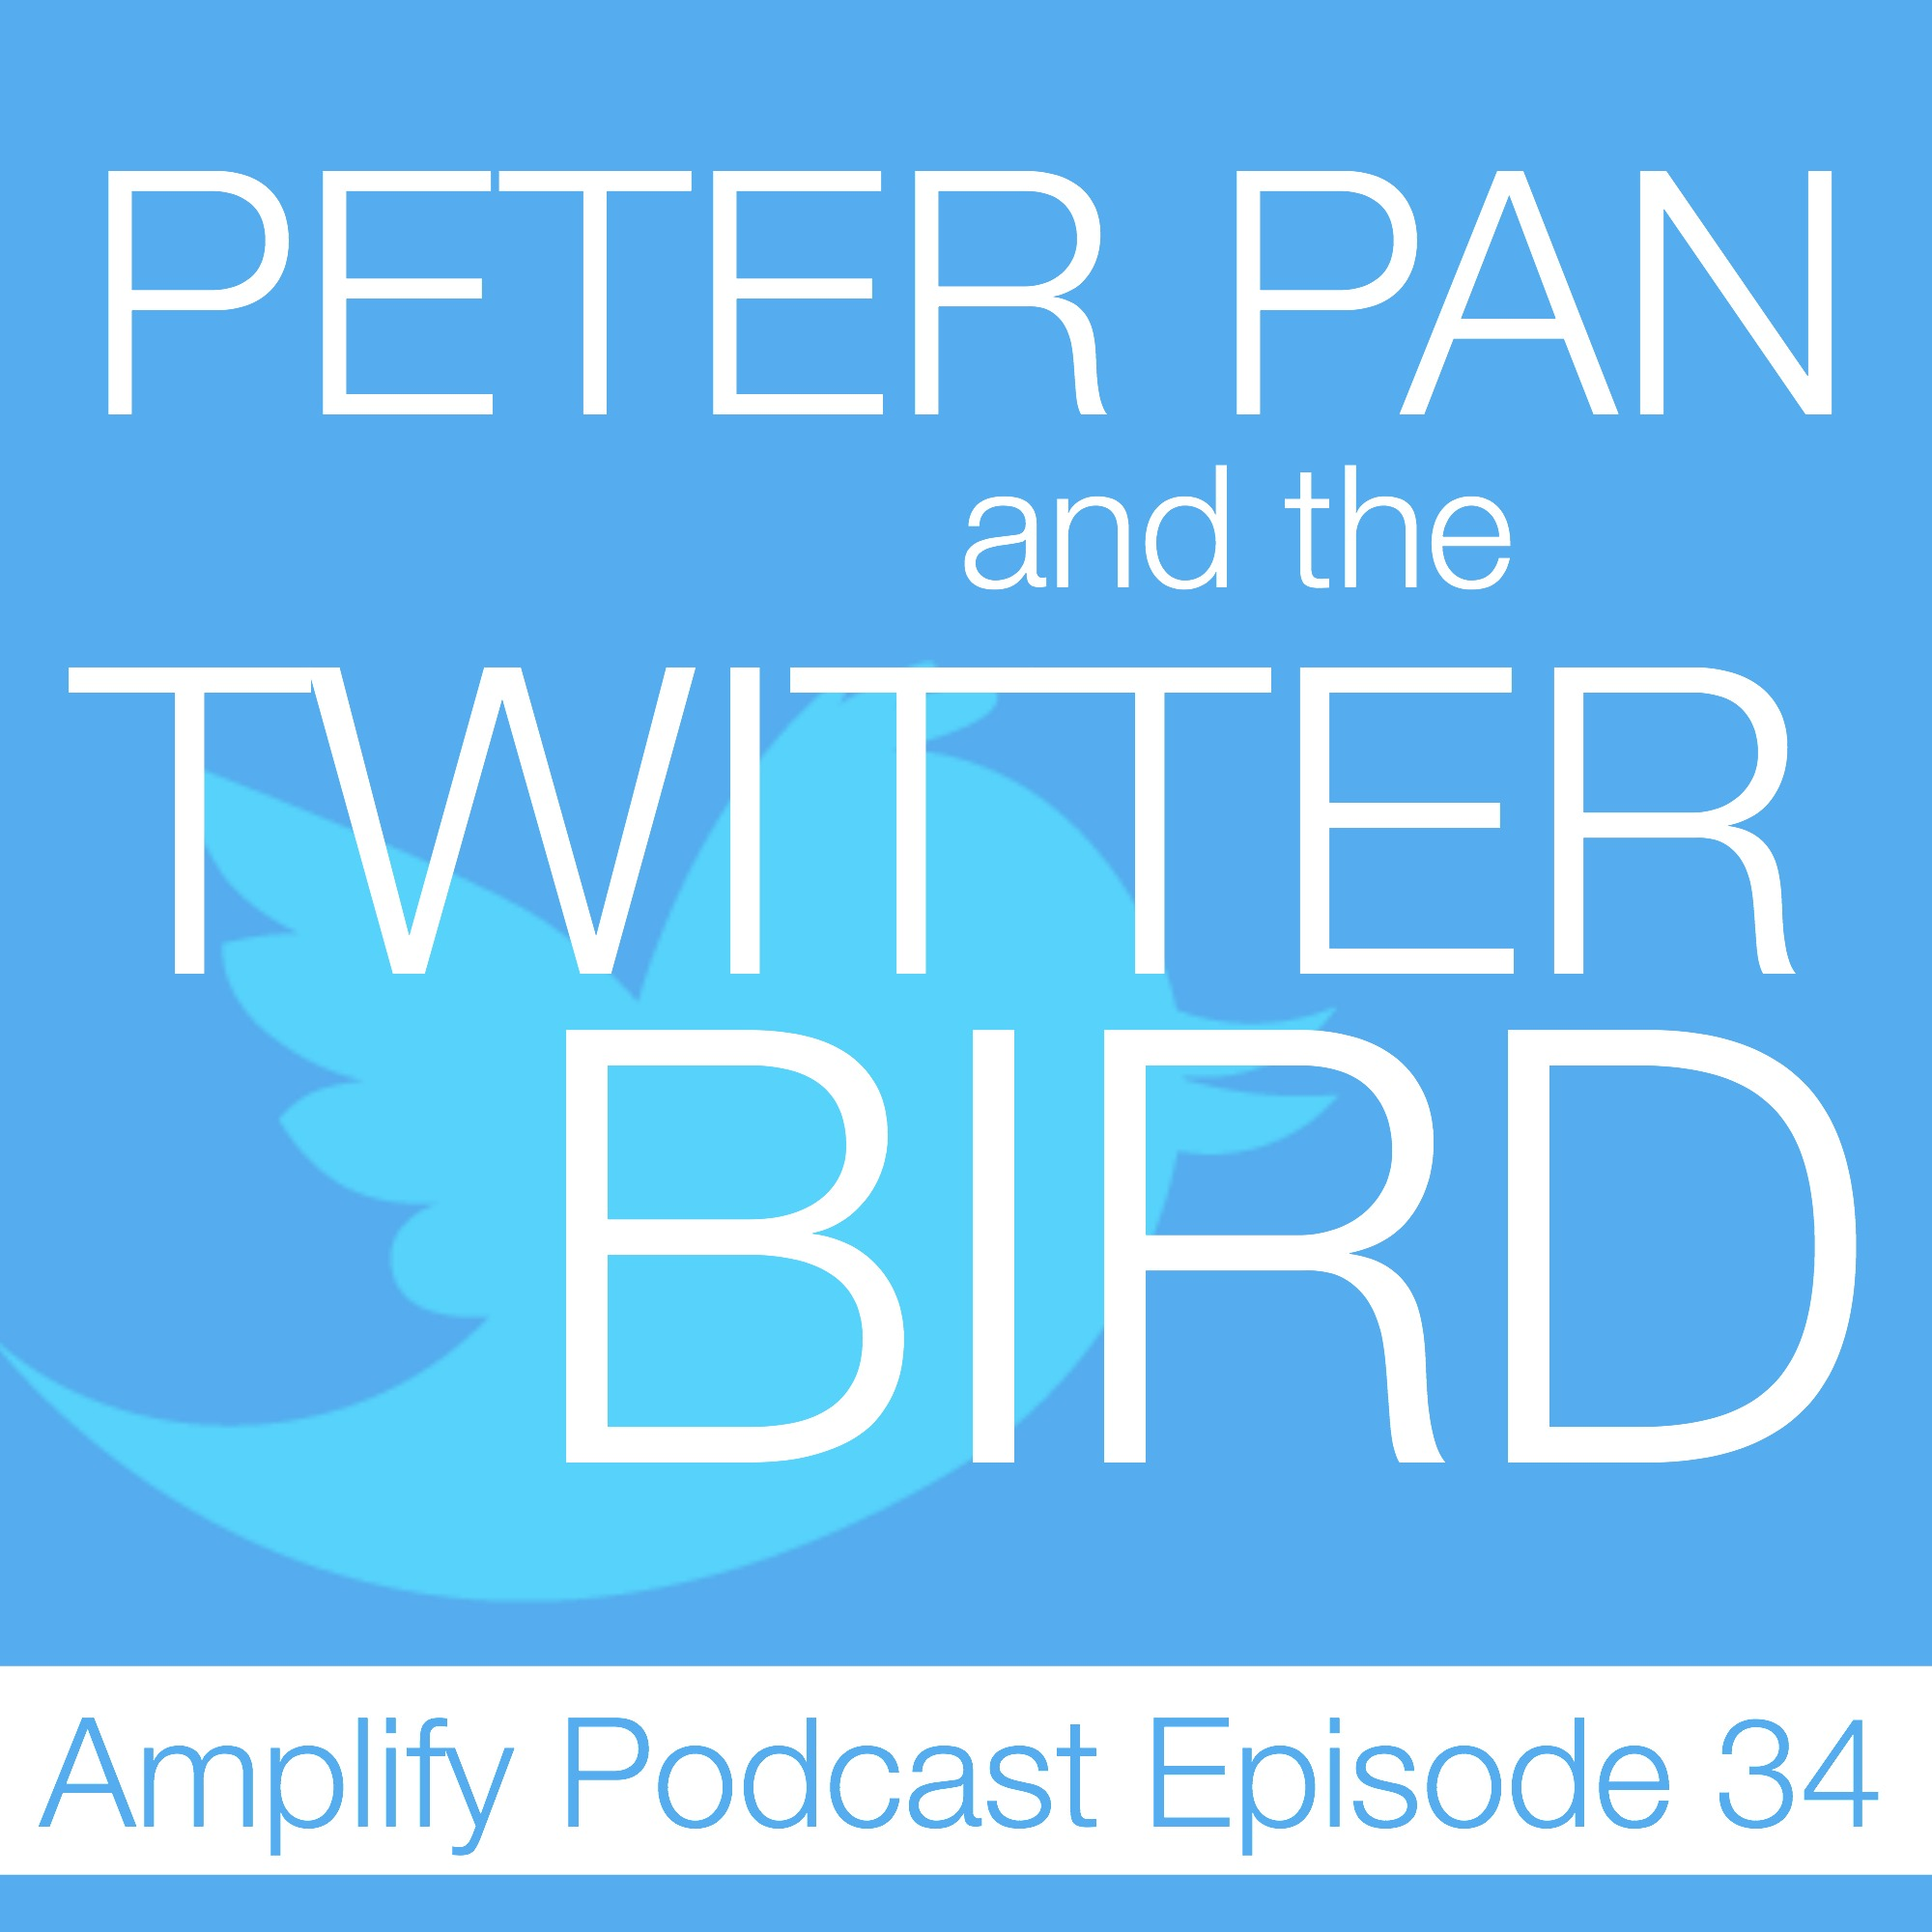 Peter Pan and the Twitter Bird